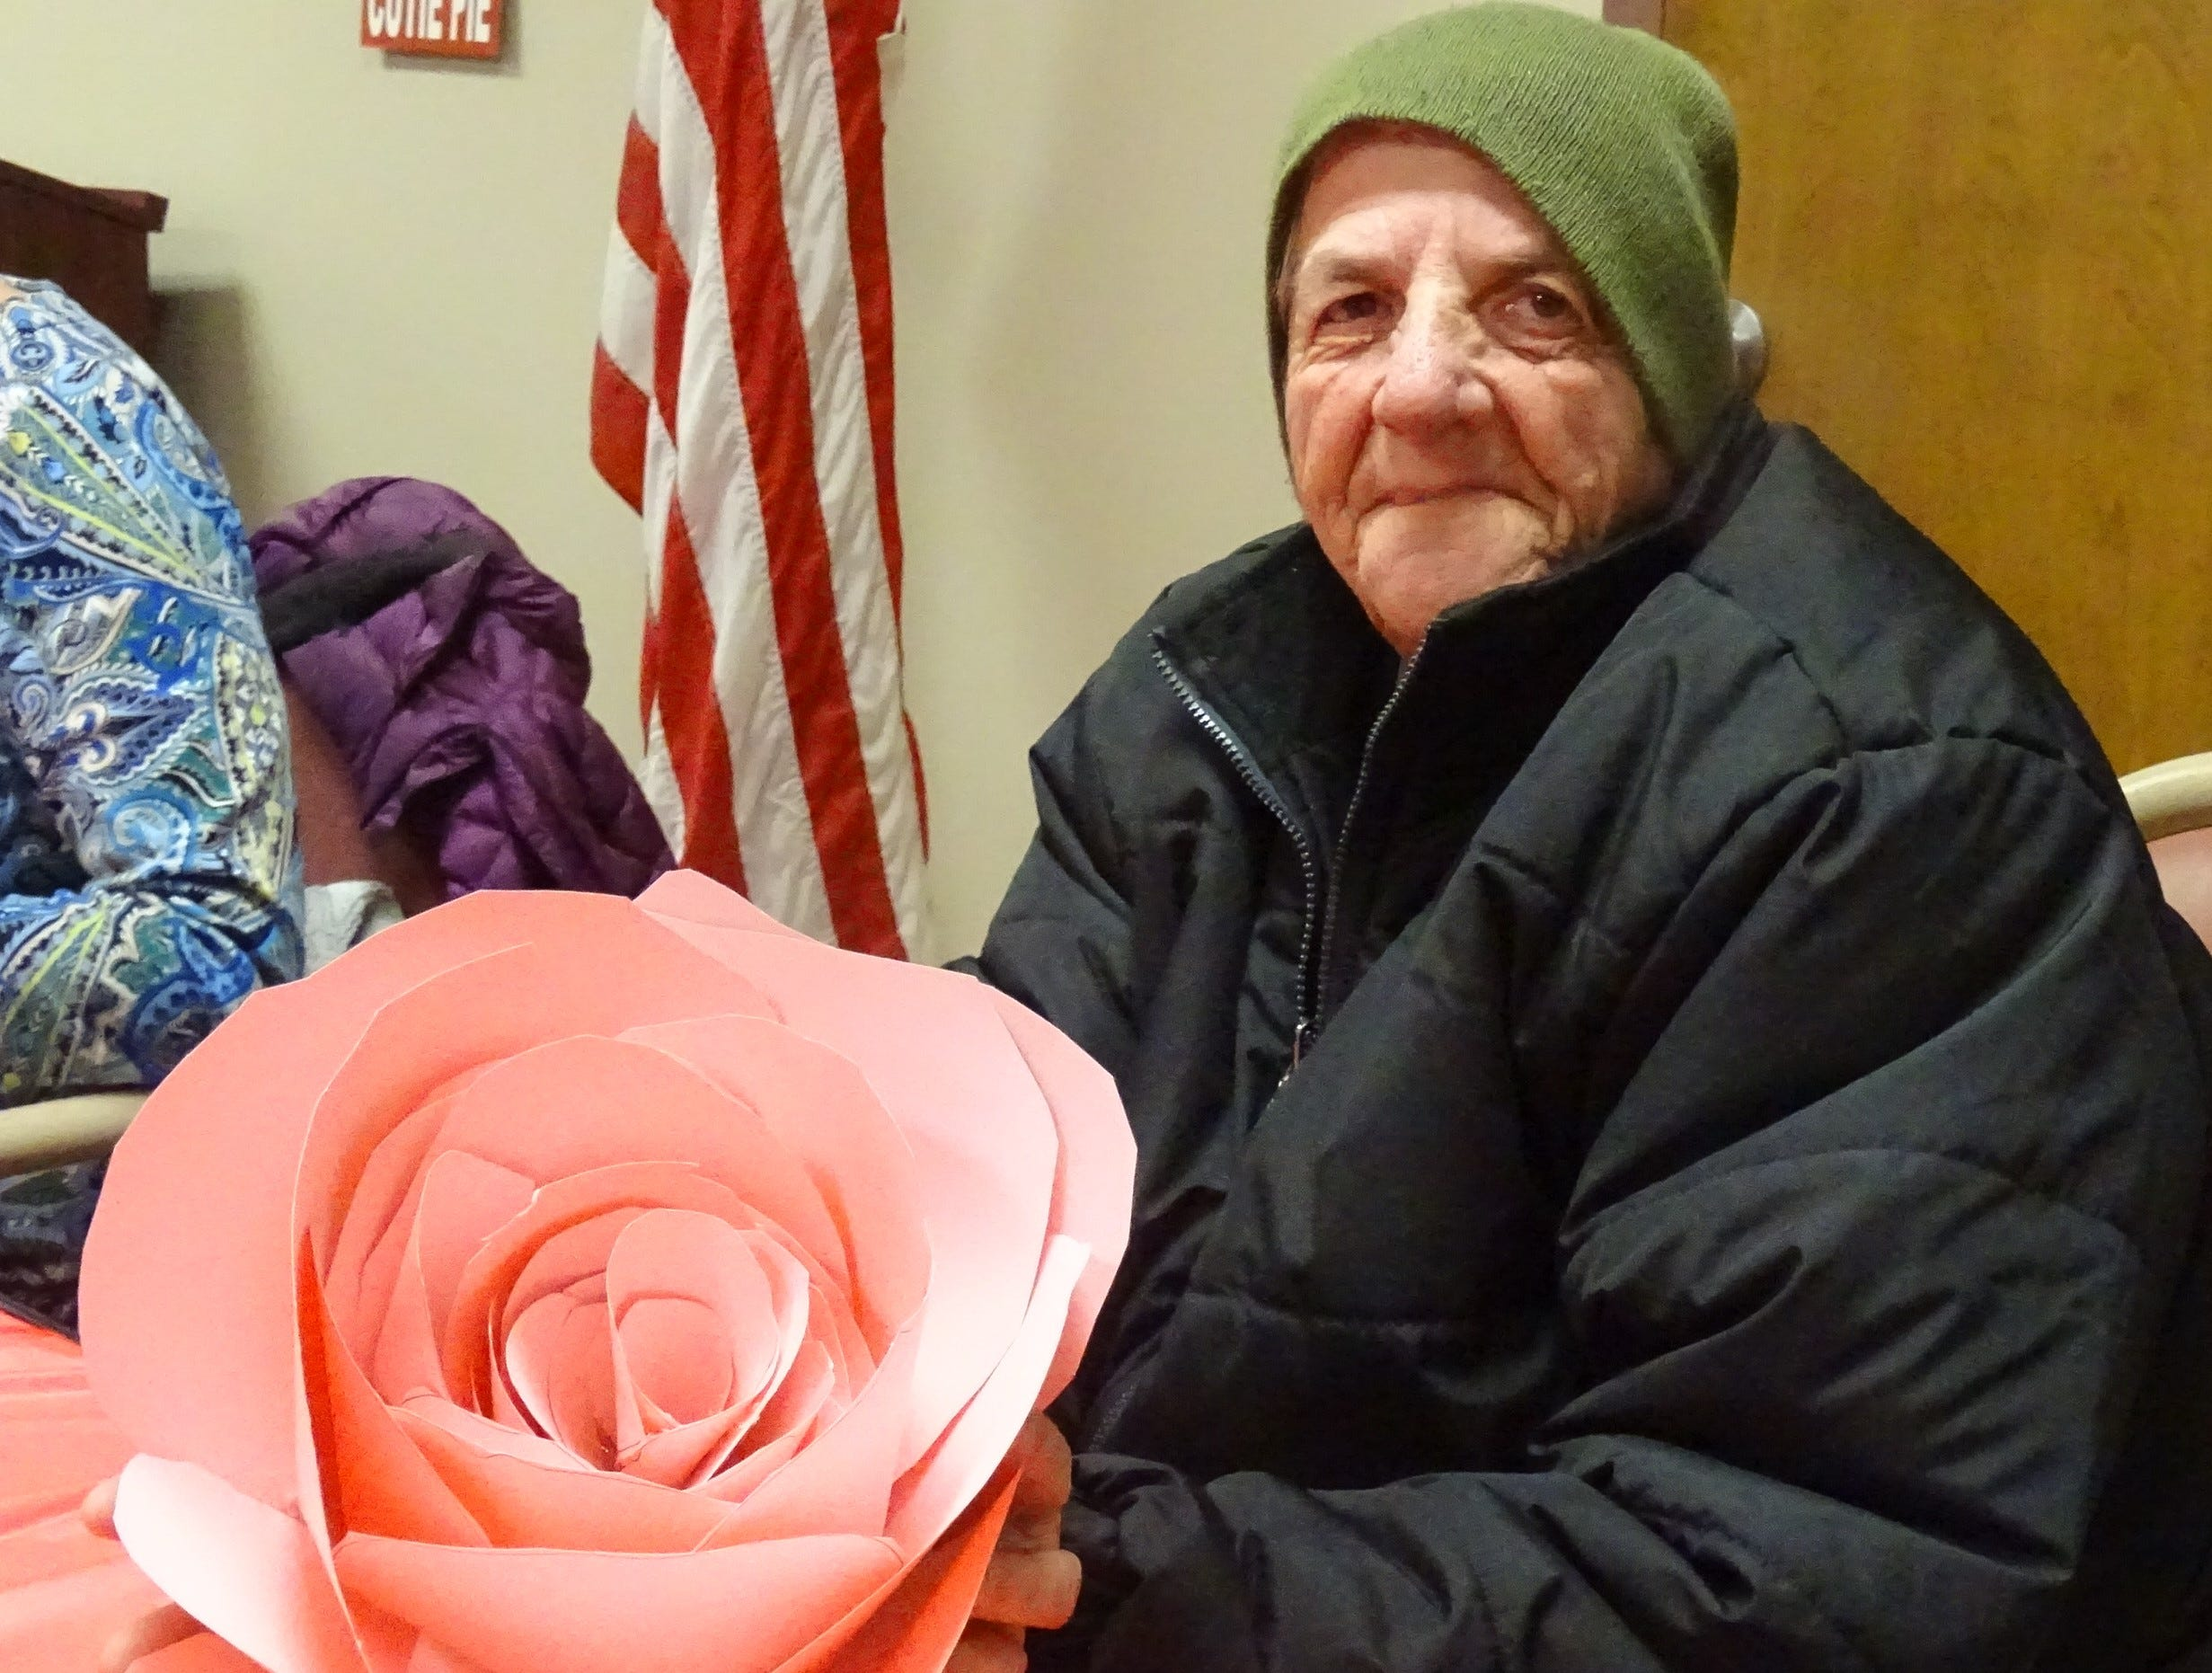 Dorothy Paloman, 74, Bucyrus, shows off her completed paper rose during a program at the Crawford County Council on Aging office on Monday afternoon.